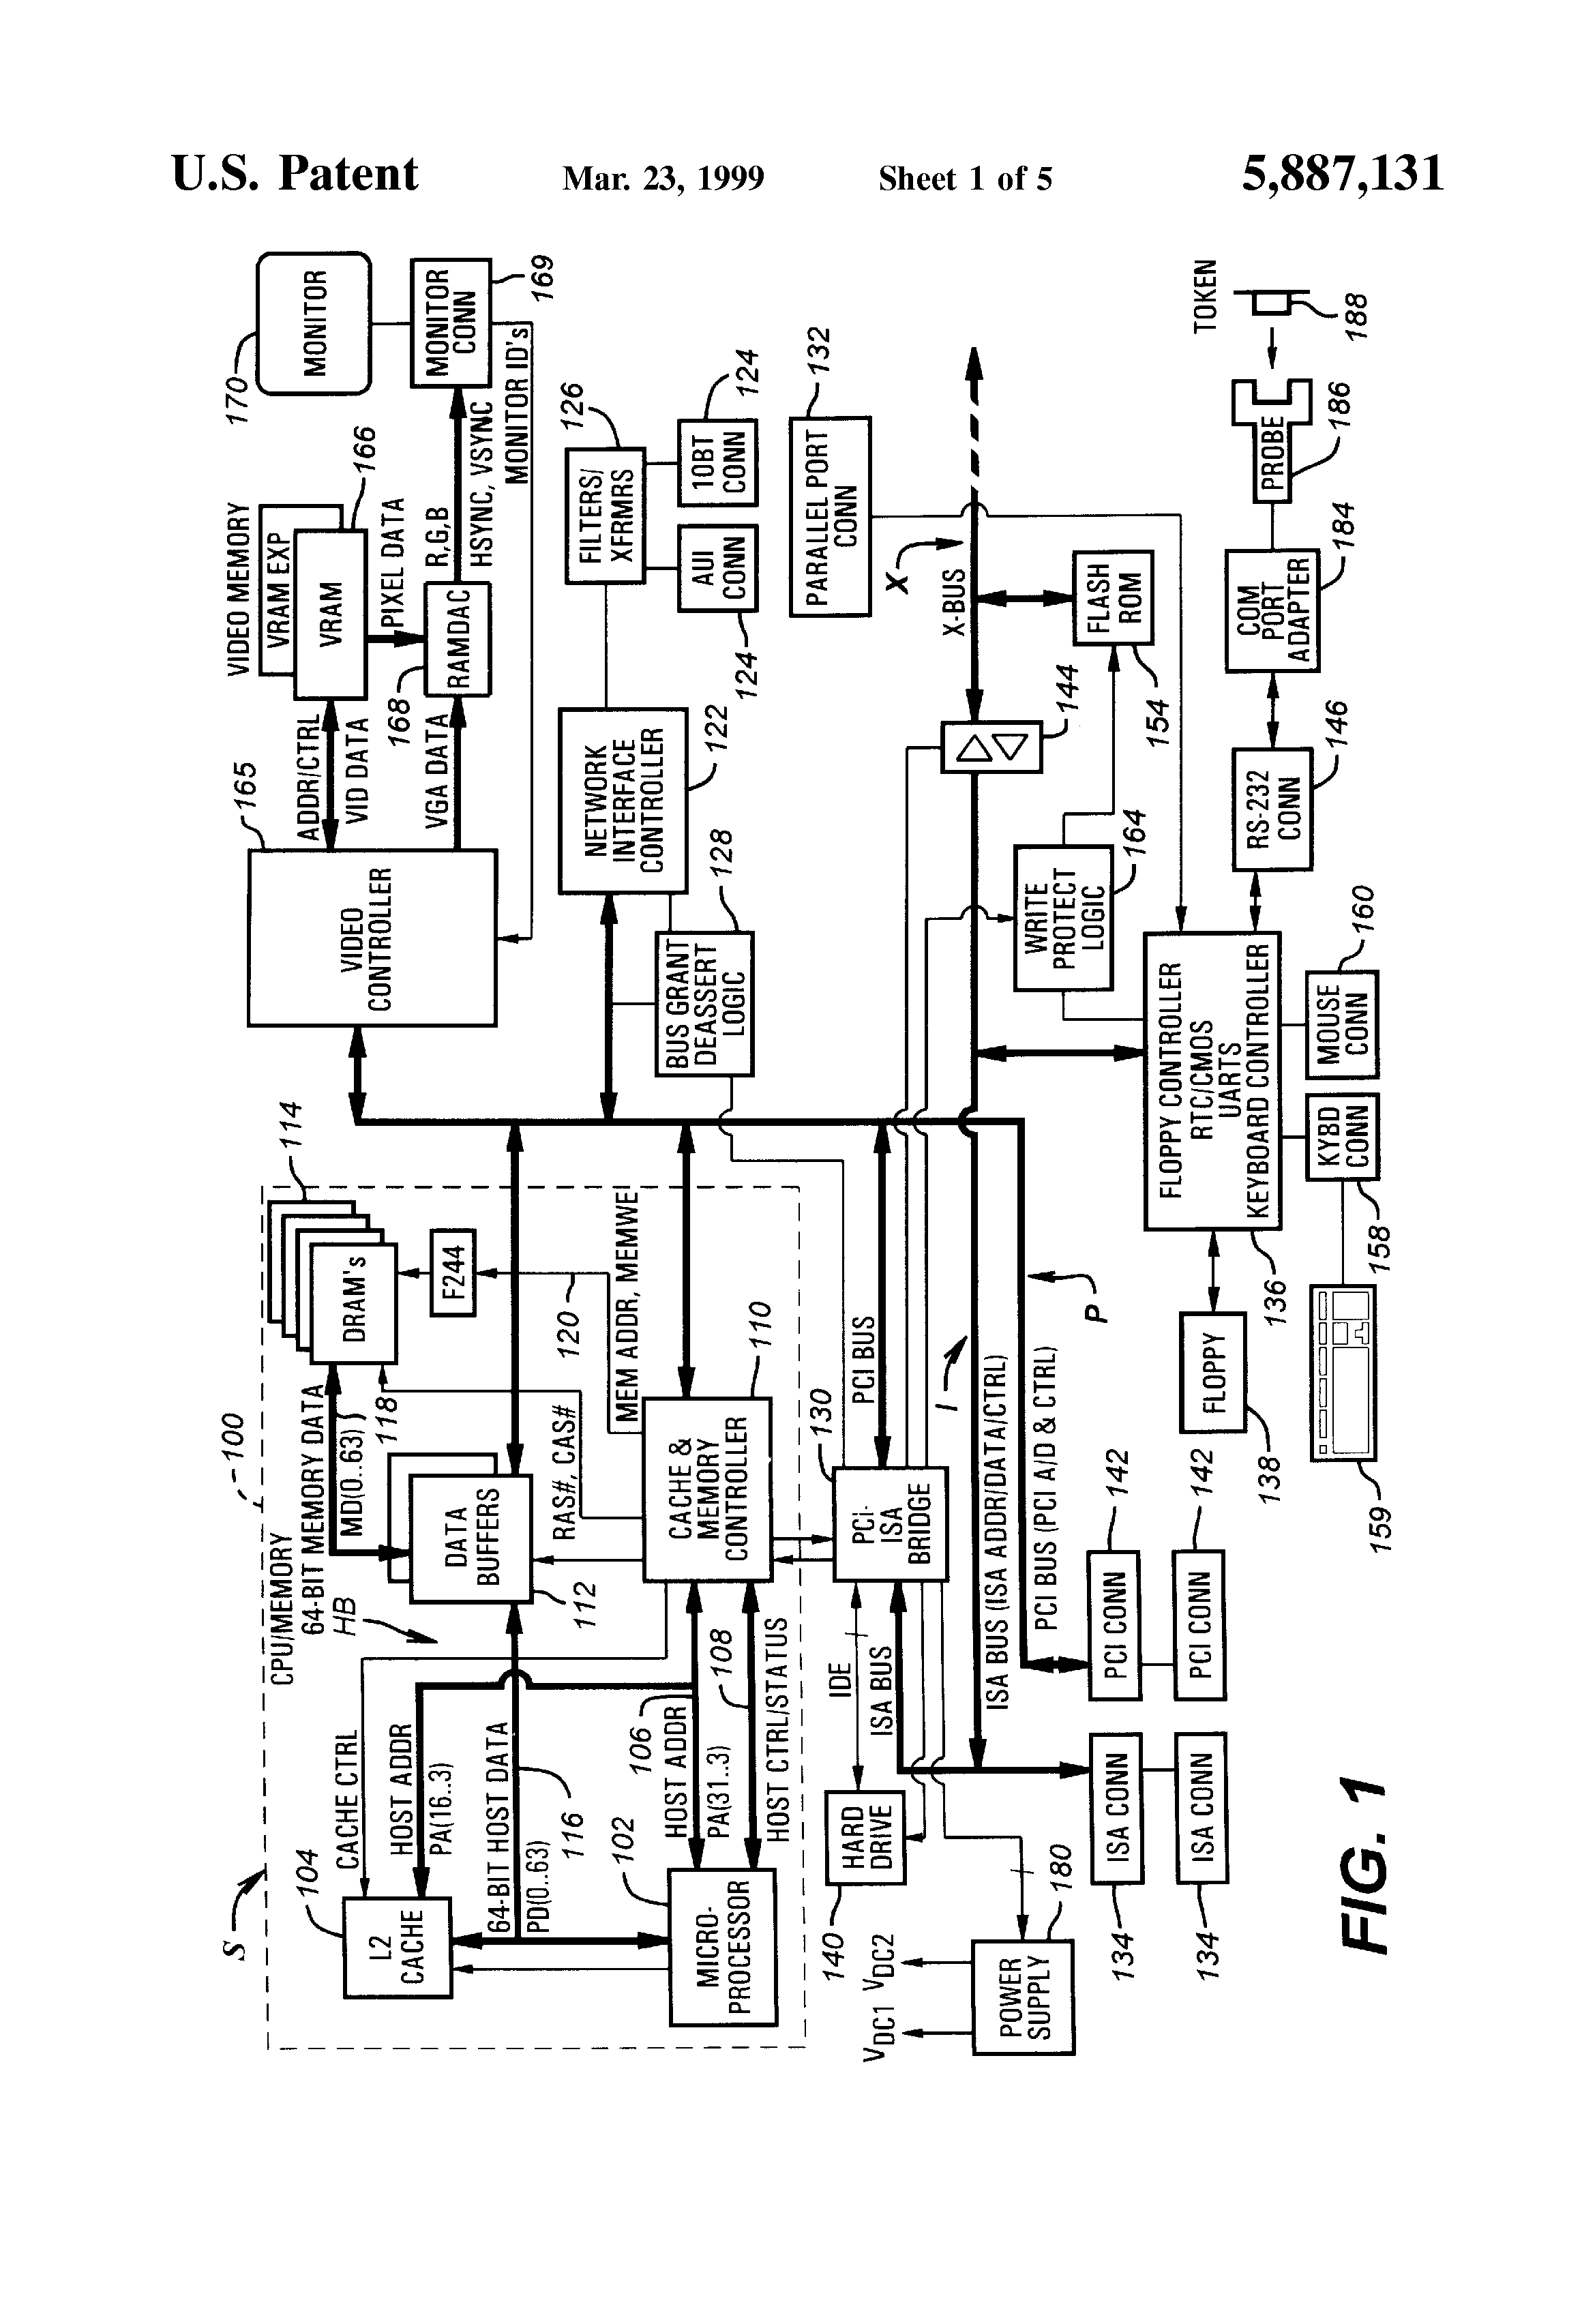 Patent Us5887131 Method For Controlling Access To A Computer Logic Diagram Isa Drawing